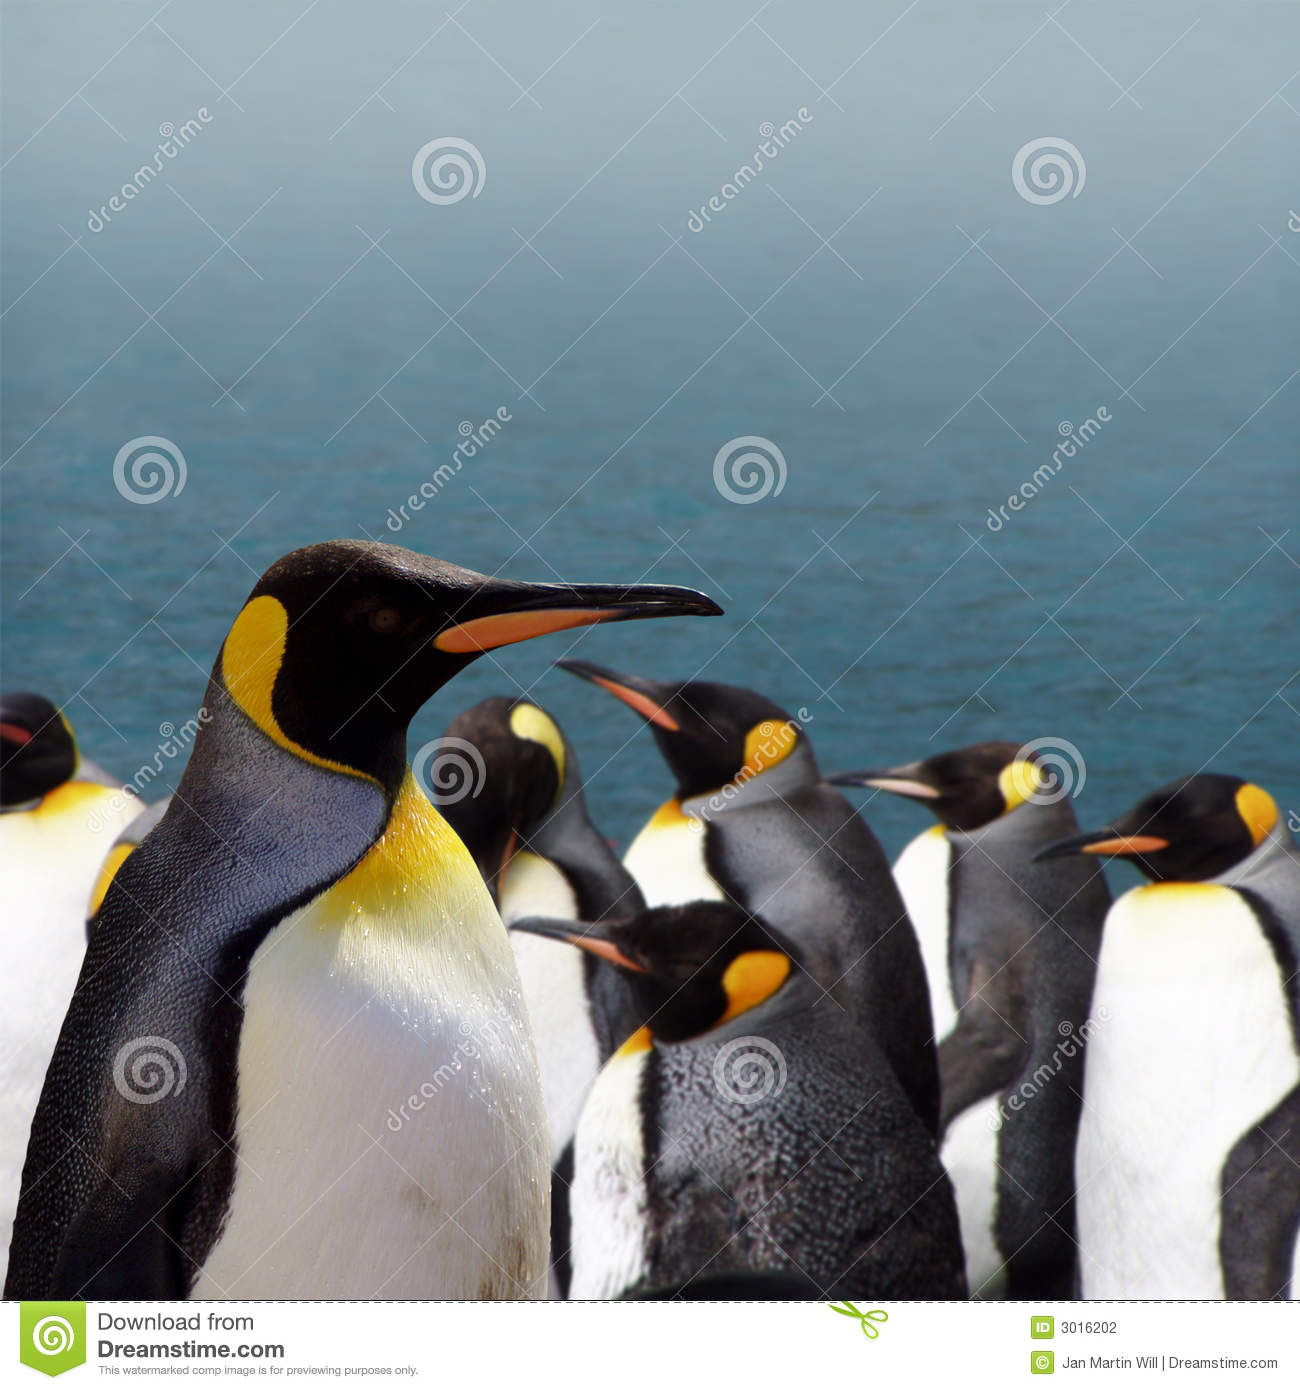 The King of the Penguins